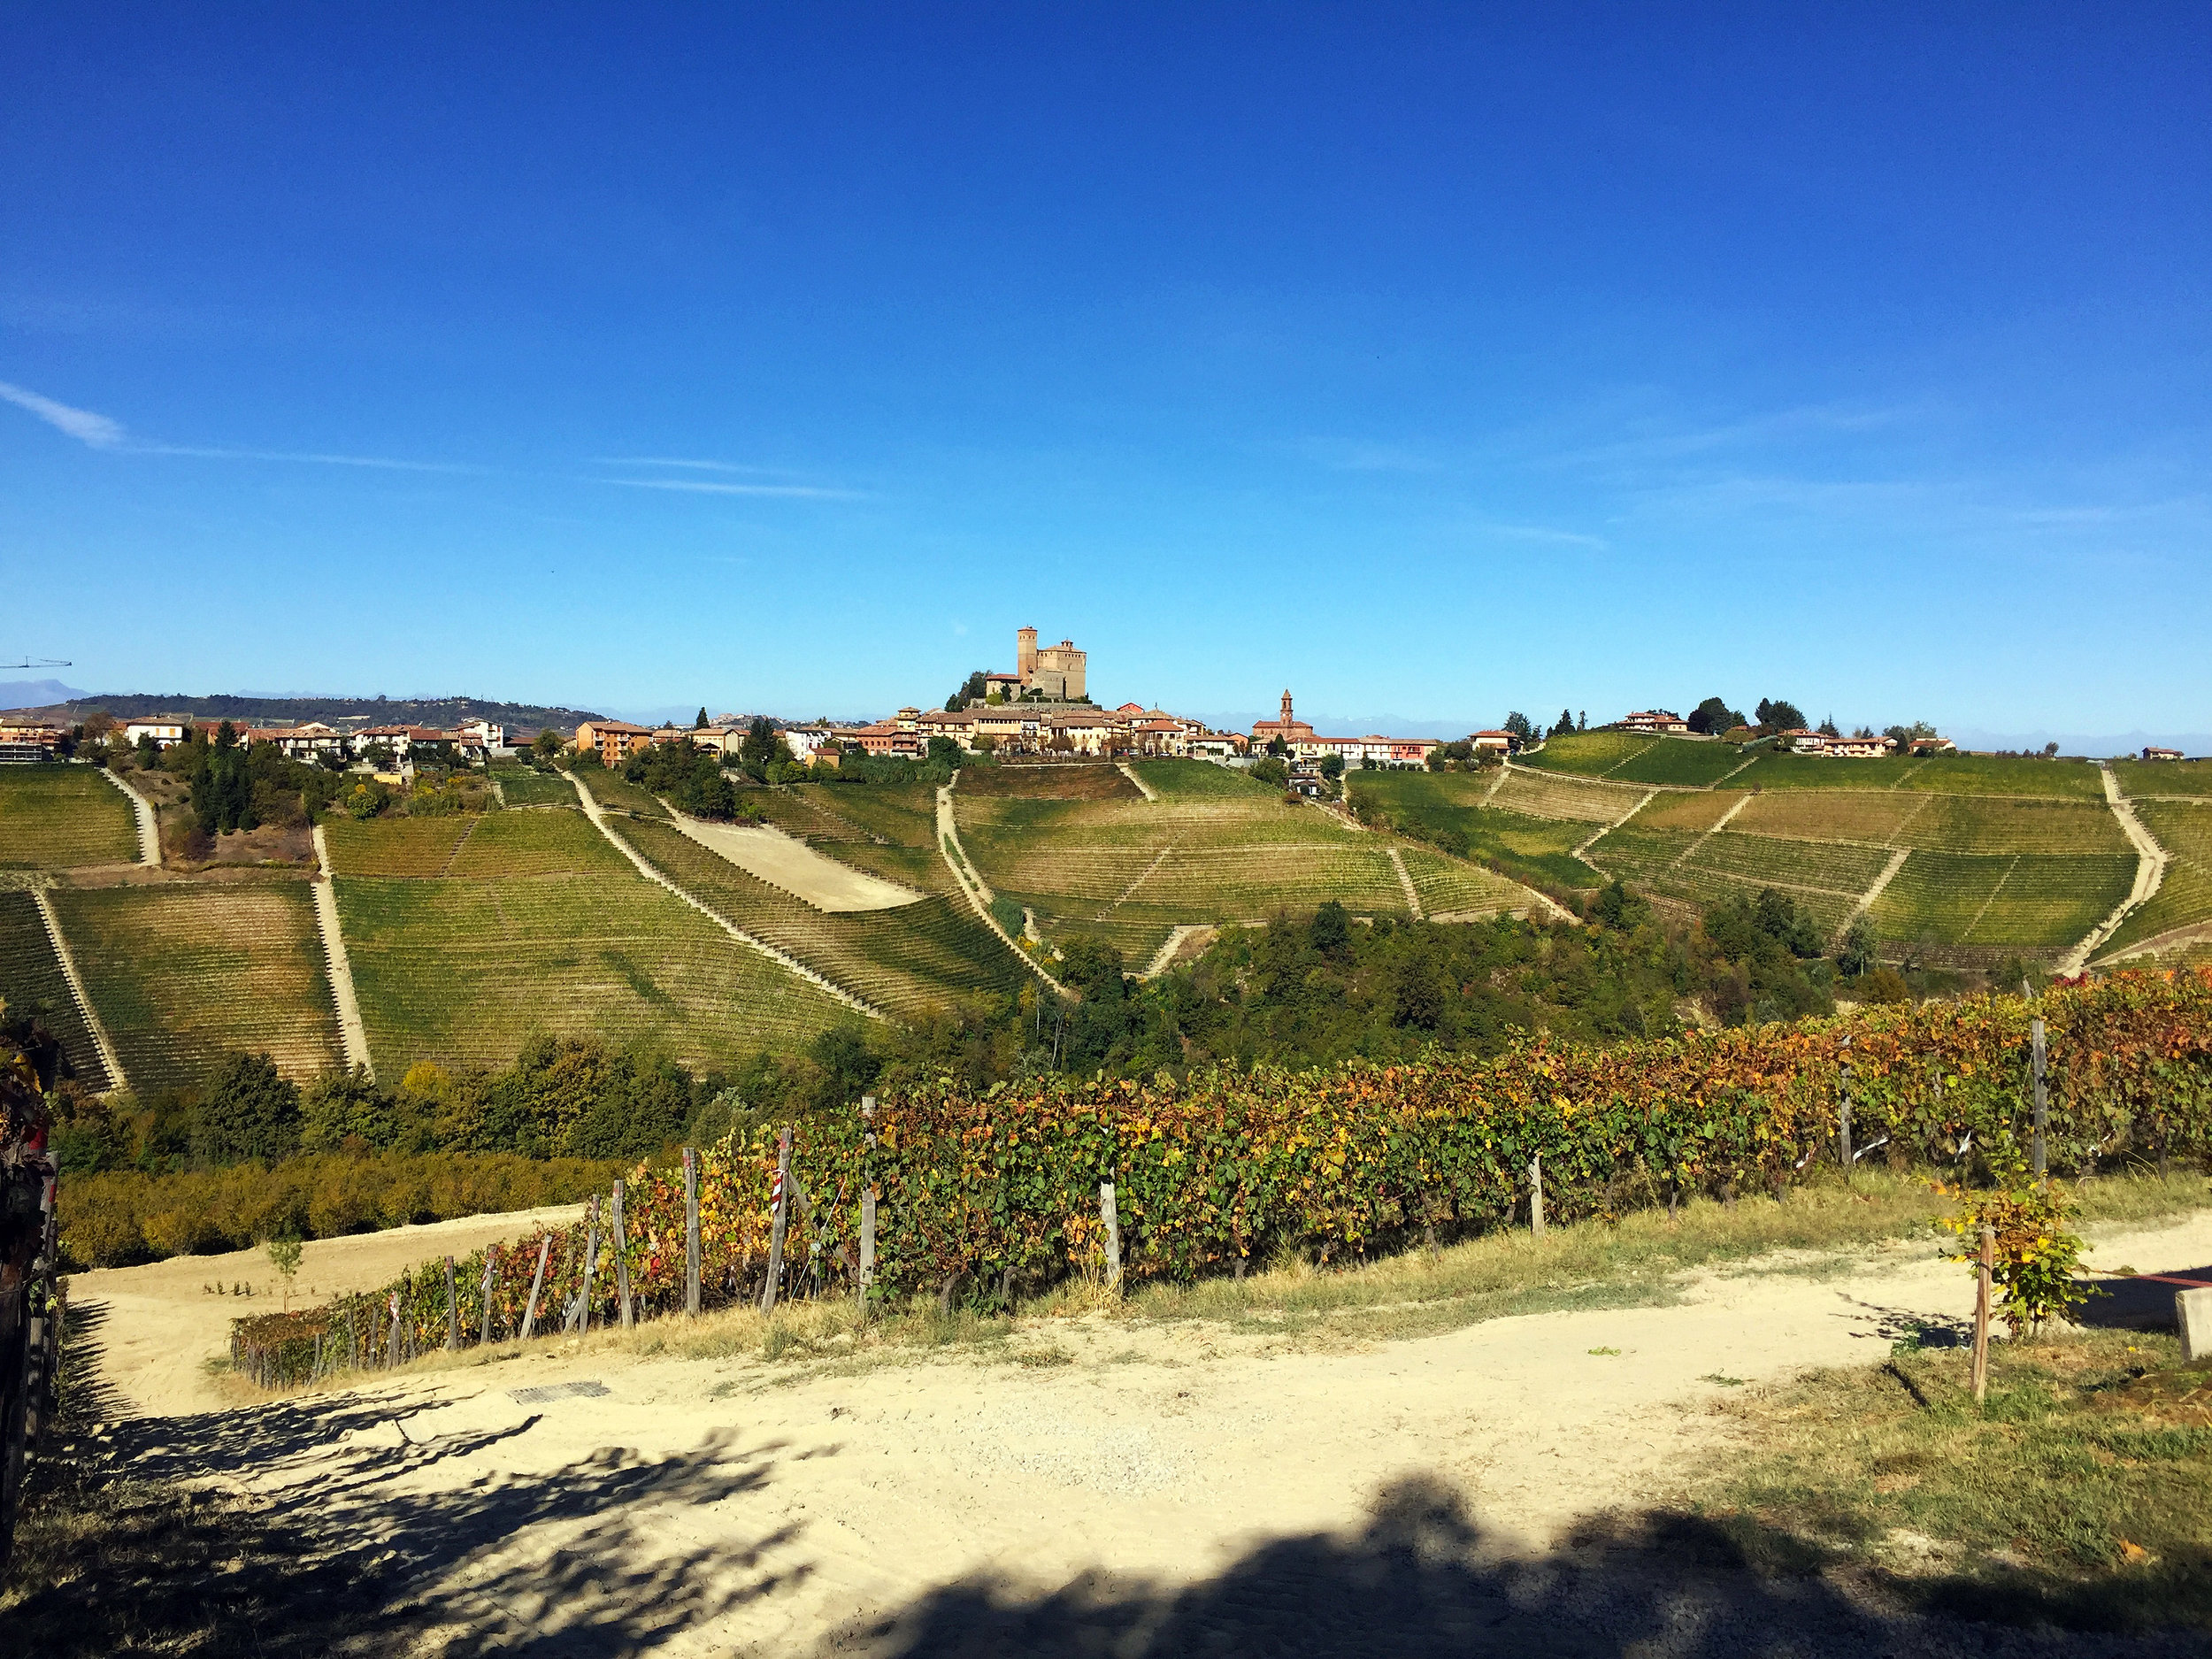 The vineyards of Barolo during our small group tour of Piedmont, Italy